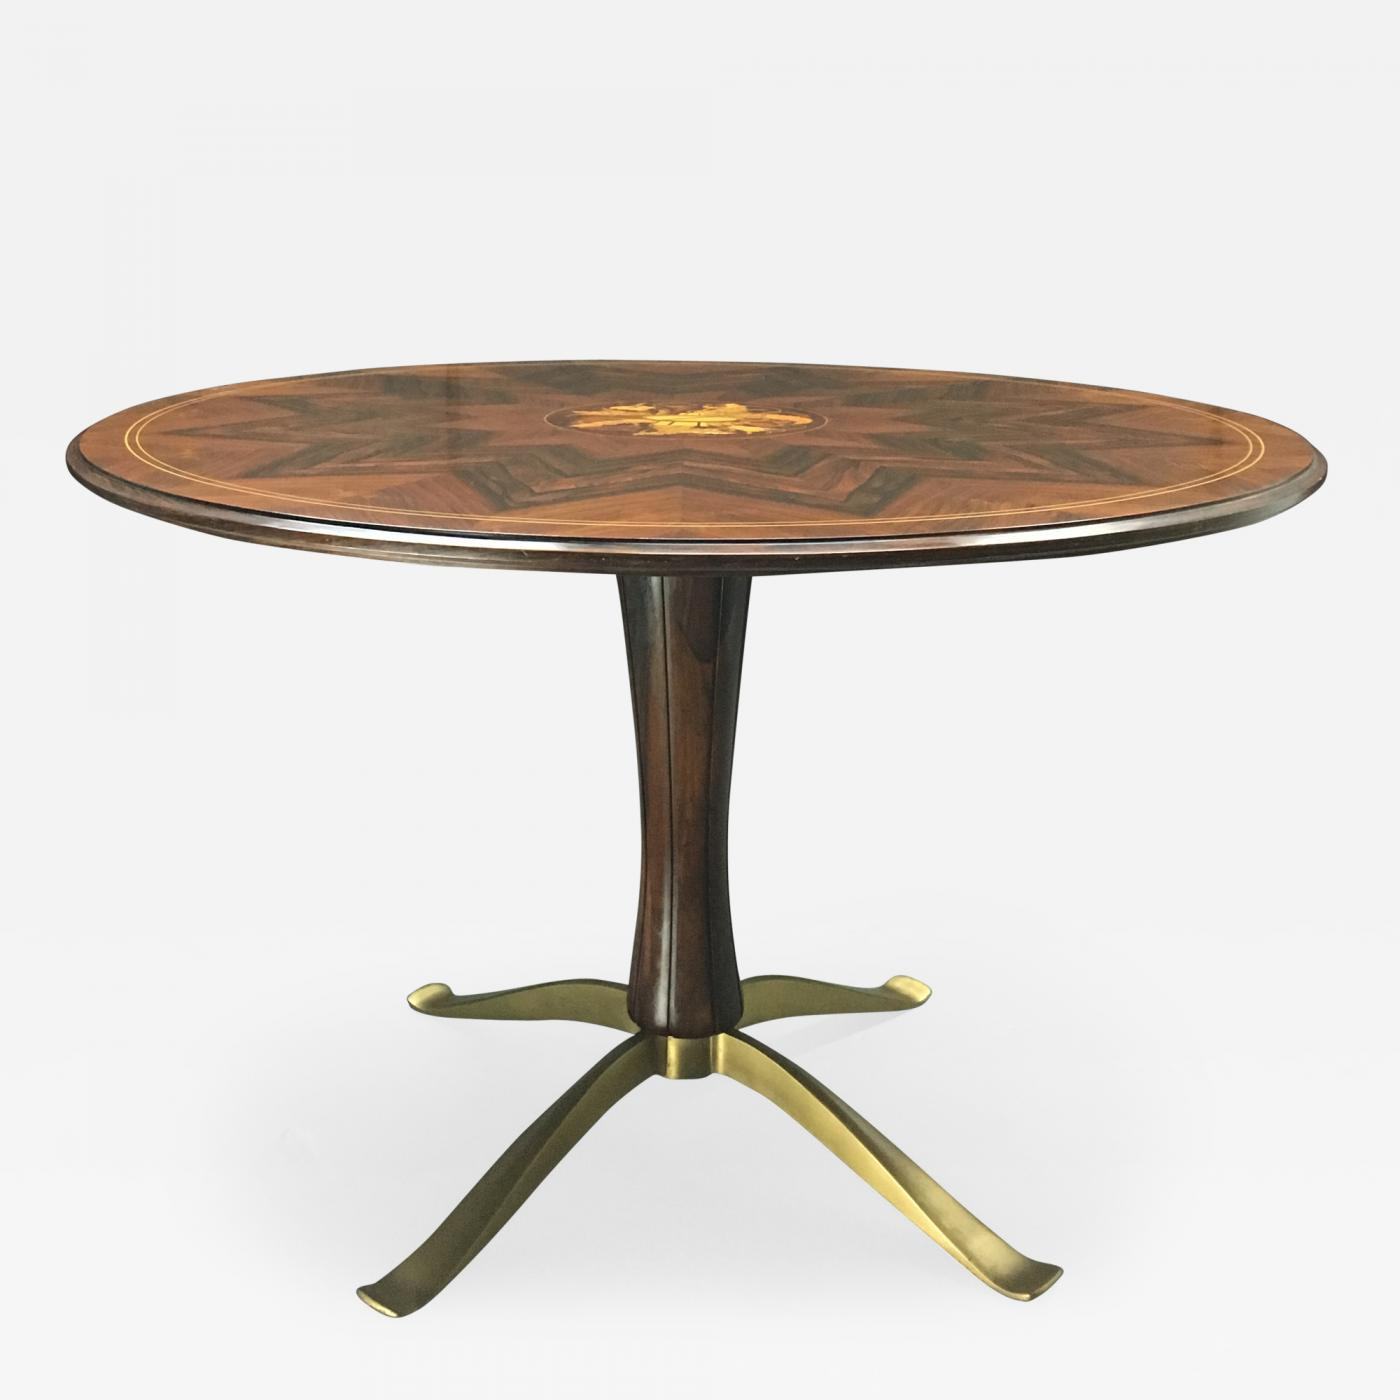 Paolo buffa a rosewood and gilt bronze dining table by for Dining table tj hughes